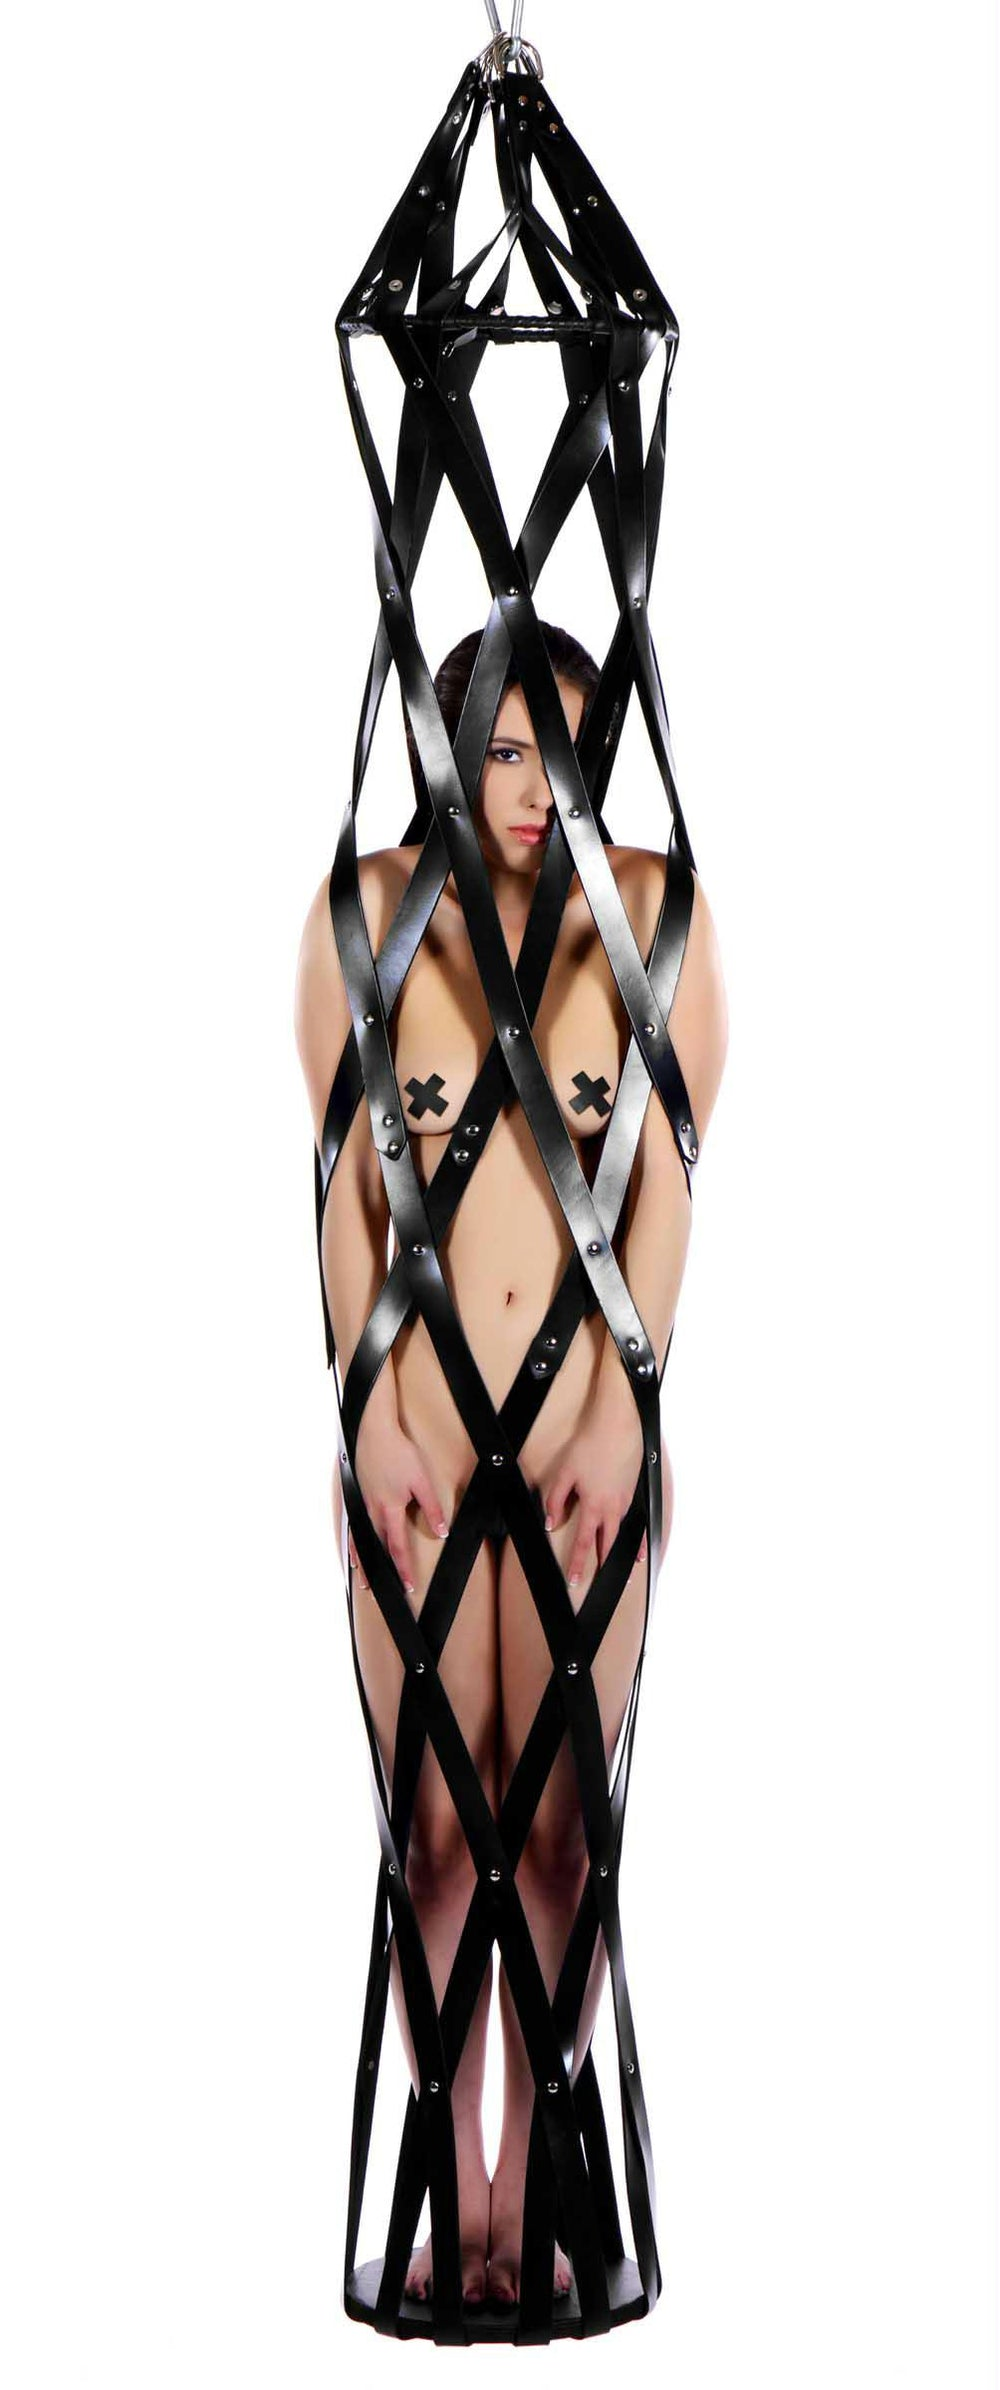 Hanging Leather Strap Cage - Fun and Kinky Sex Toys